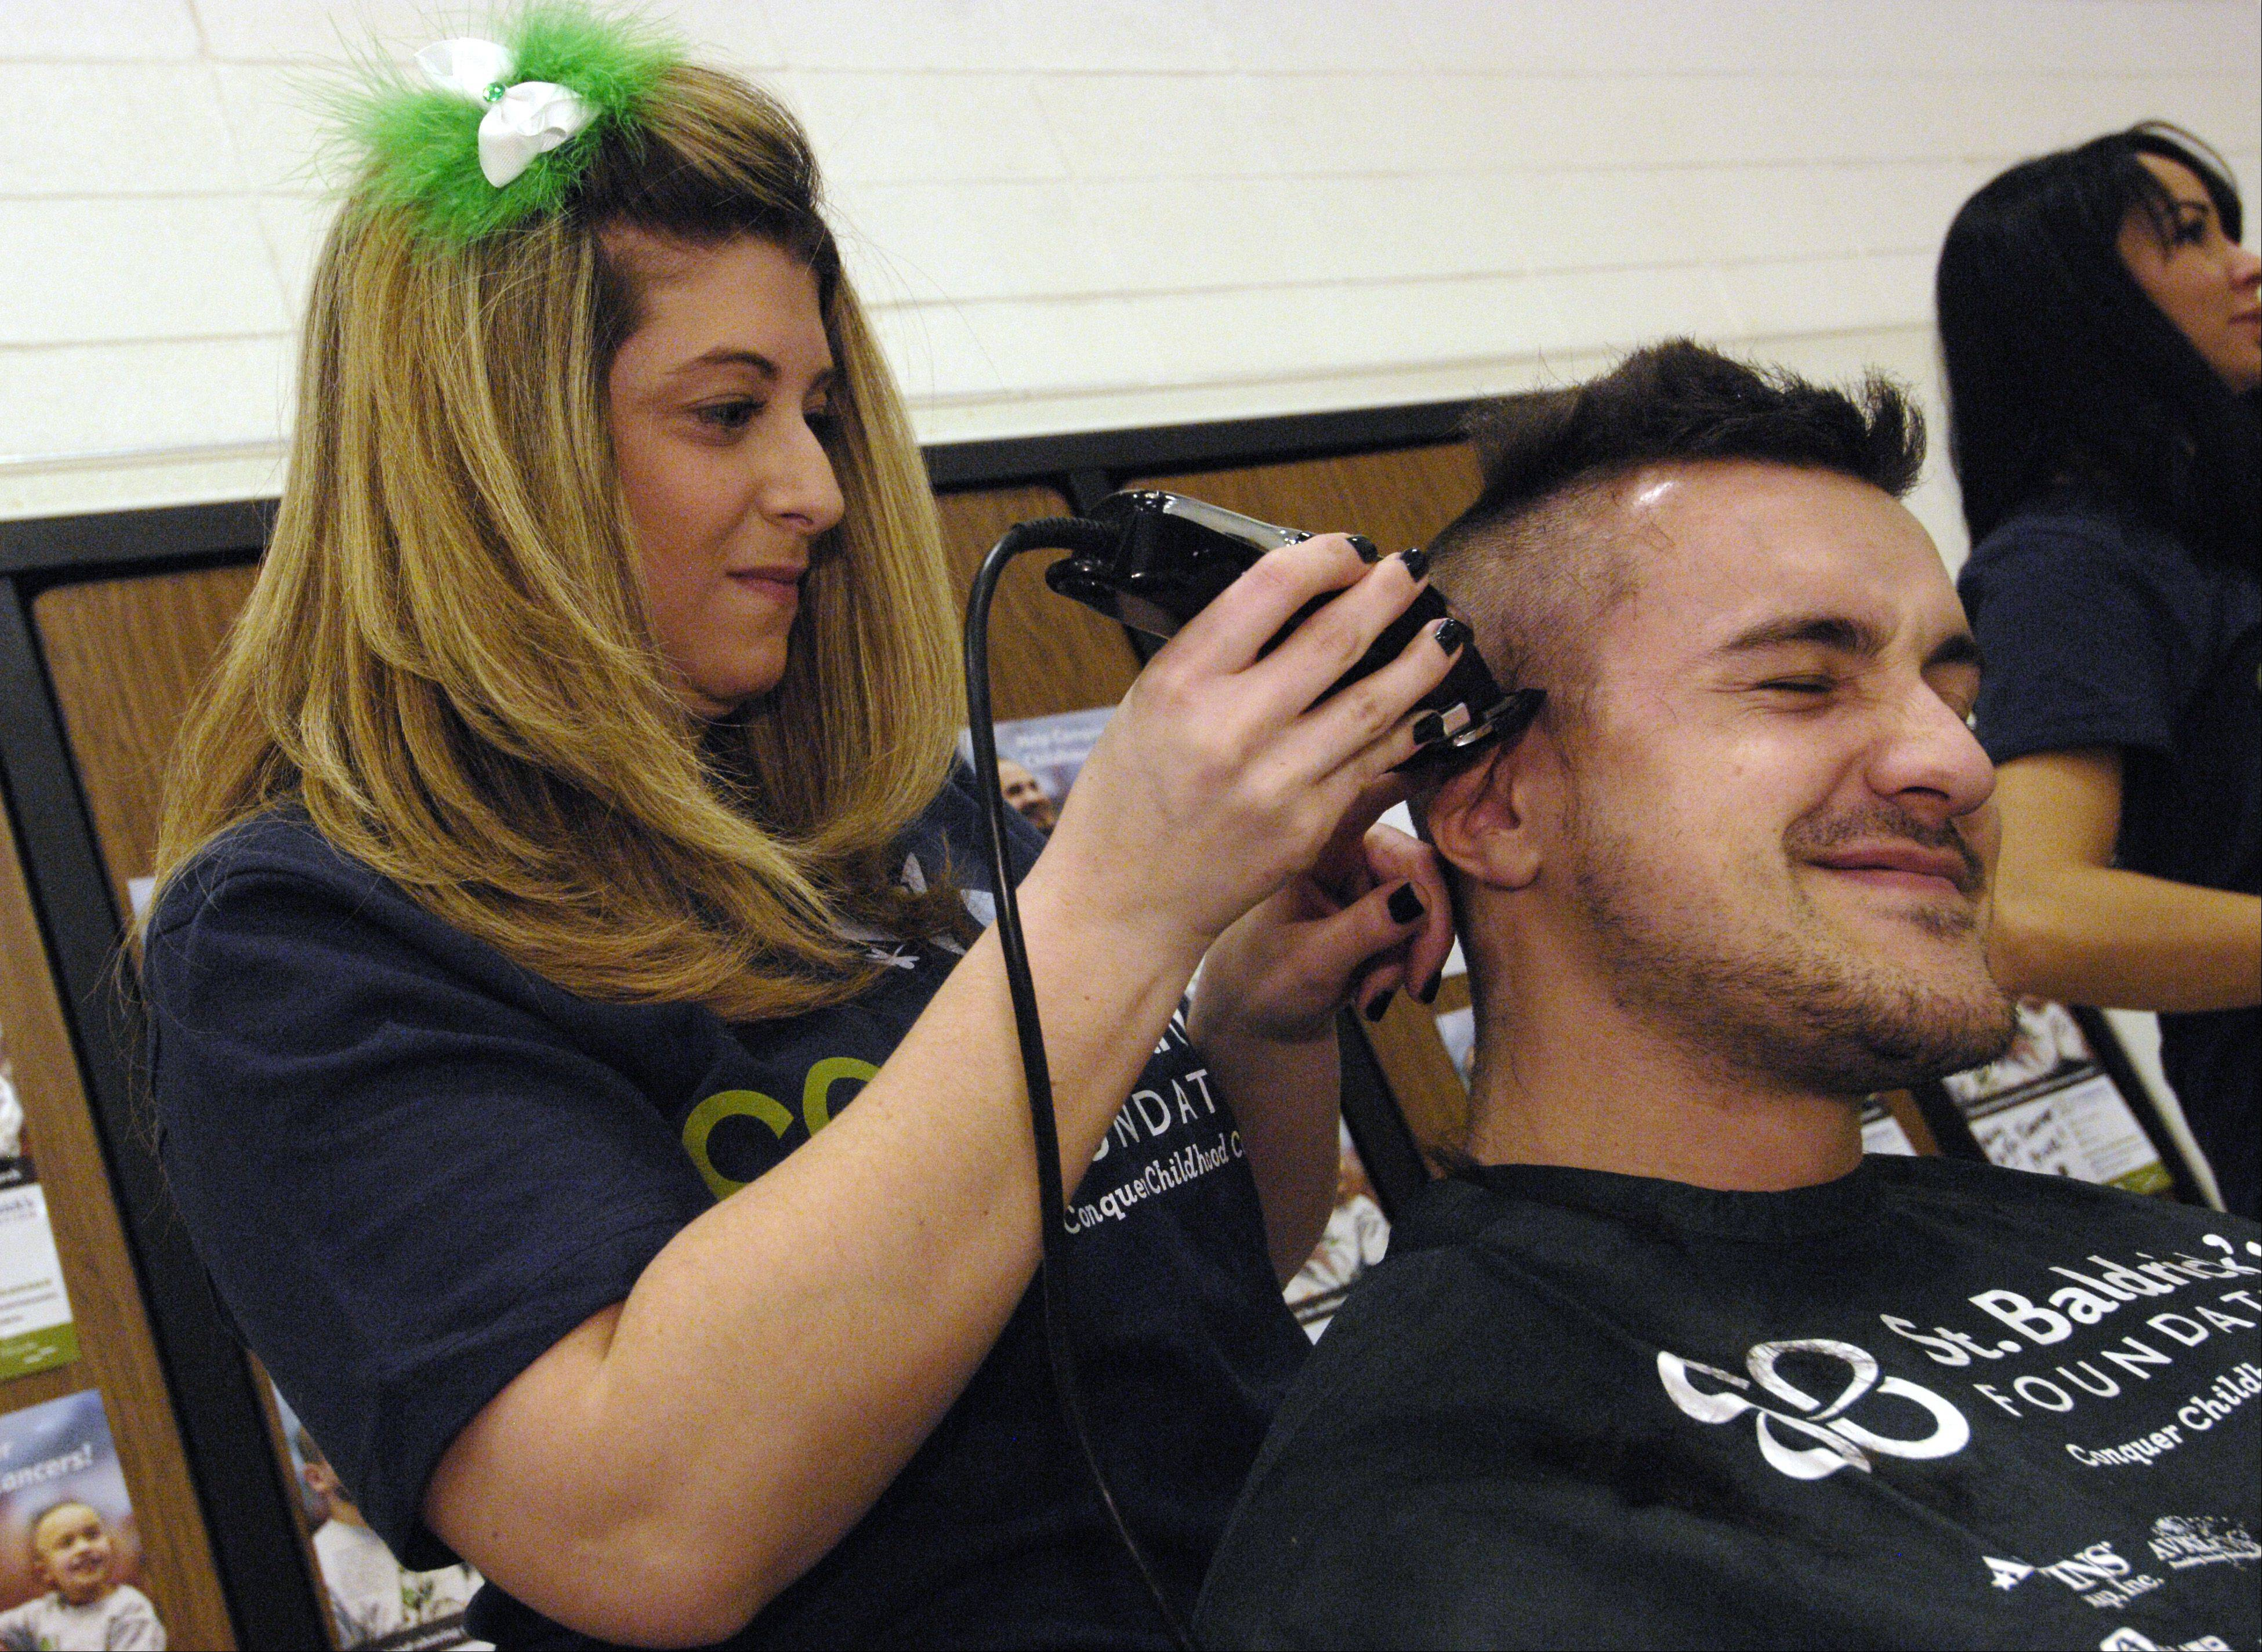 Gina Barzso of Bartlett shaves the head of Brandon Burck of Bartlett during the St. Baldrick's Day head shaving event at Evergreen Elementary School in honor of third grader Jack O'Donoghue, who's cancer is now in remission.